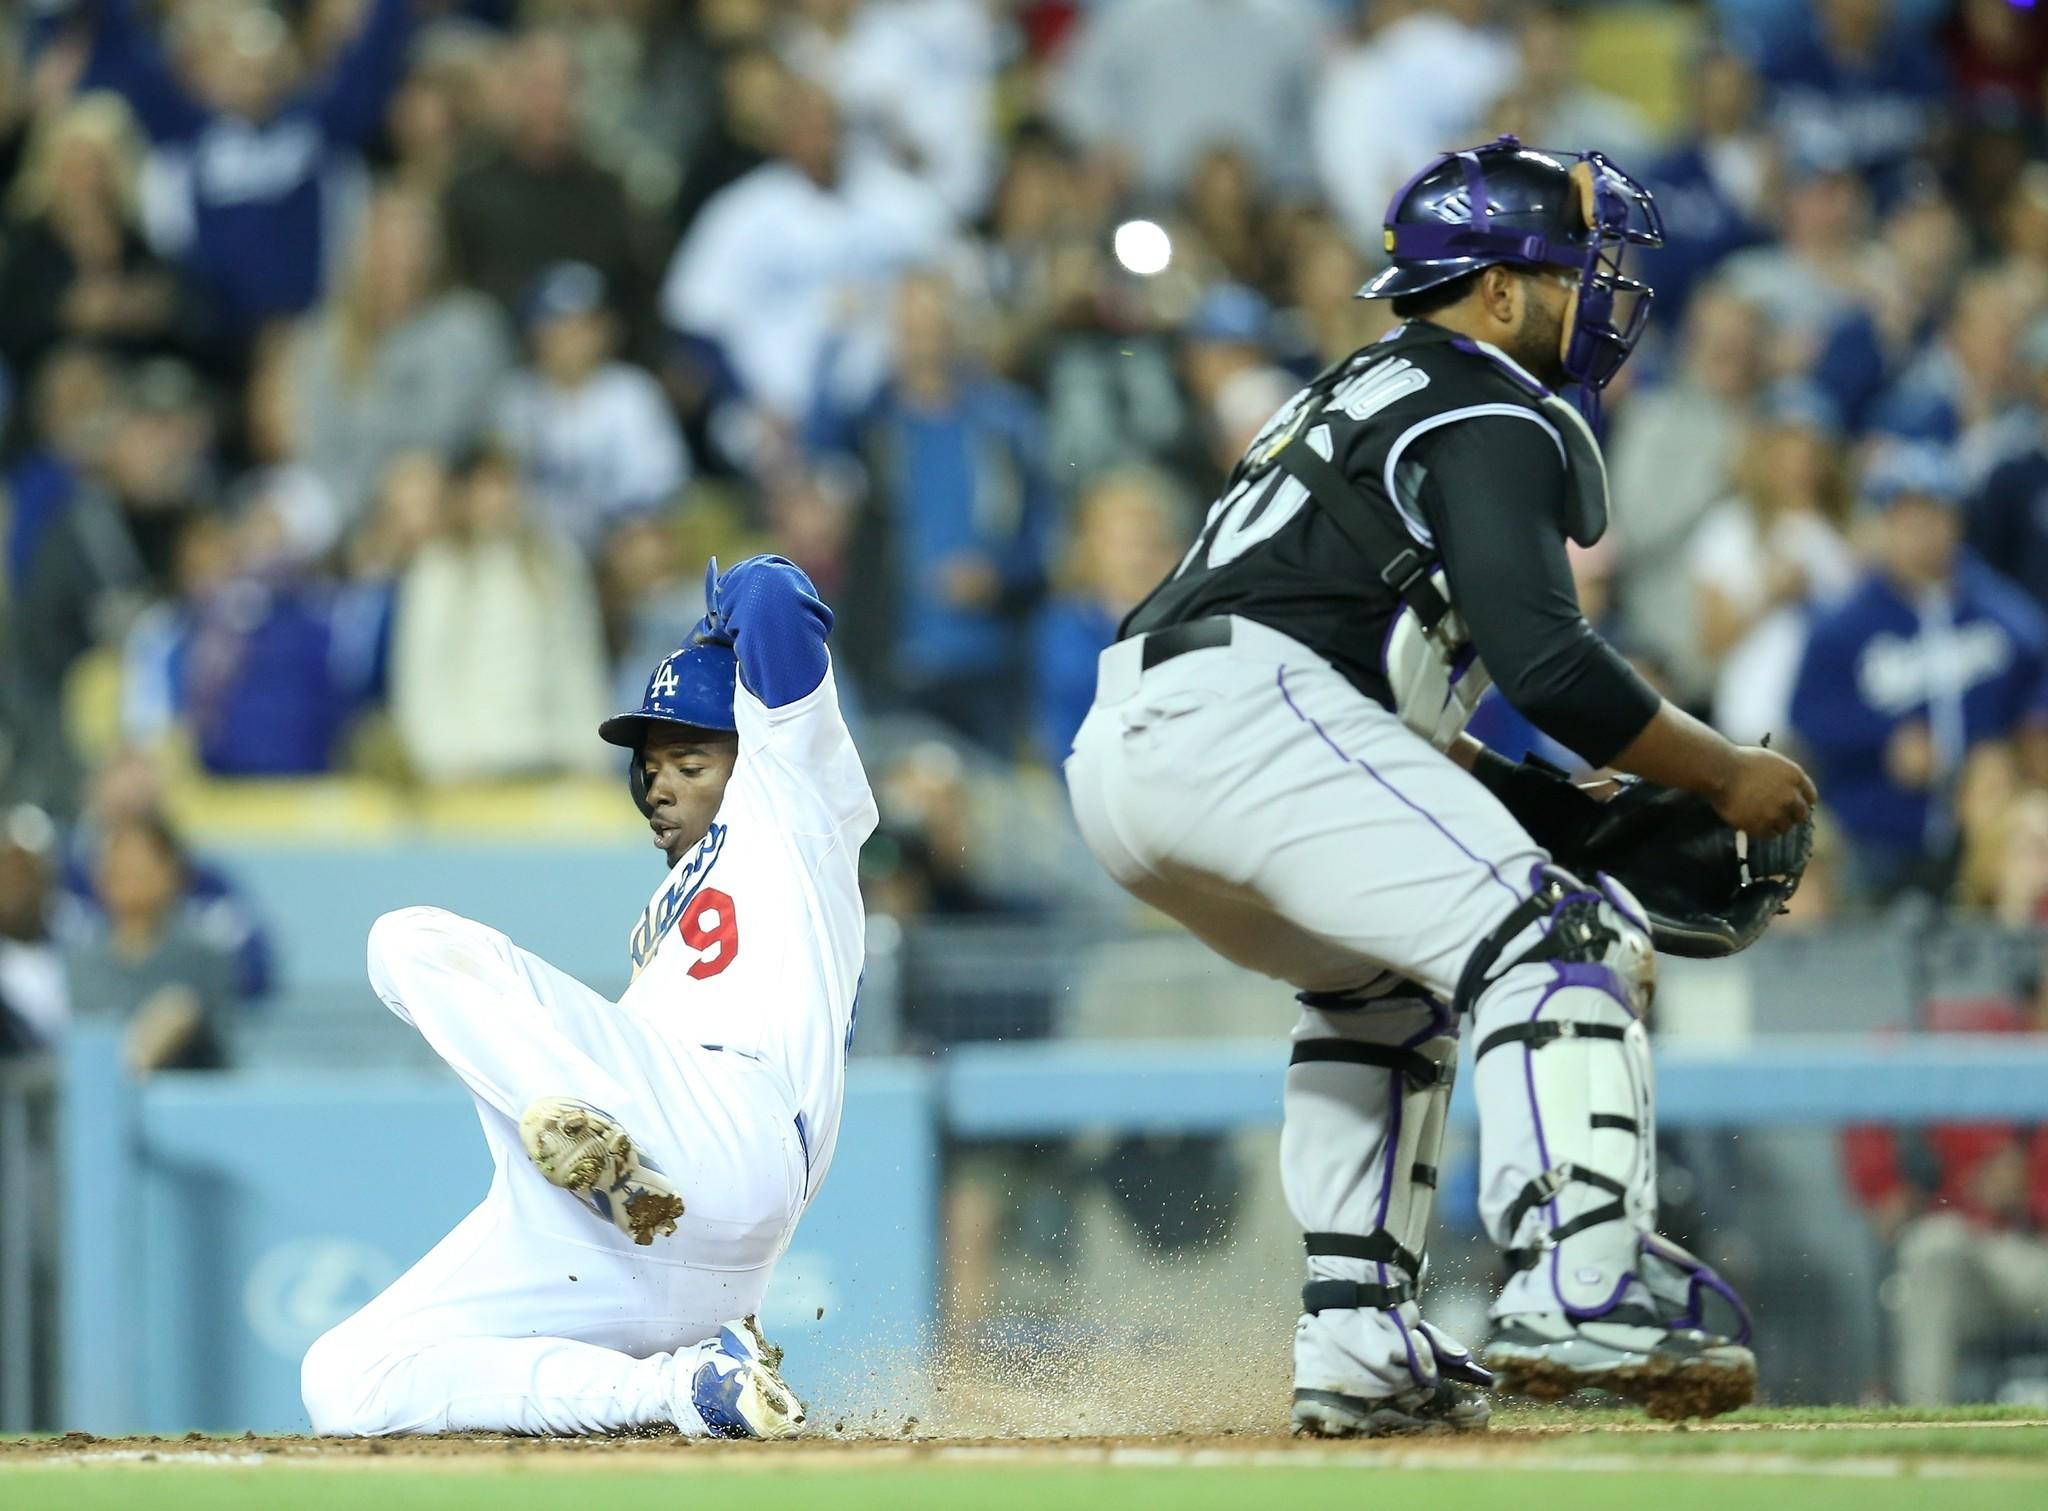 Dee Gordon slides past Colorado catcher Wilin Rosario to score in the third inning of the Dodgers' 5-4 loss to the Rockies on Friday at Dodger Stadium.